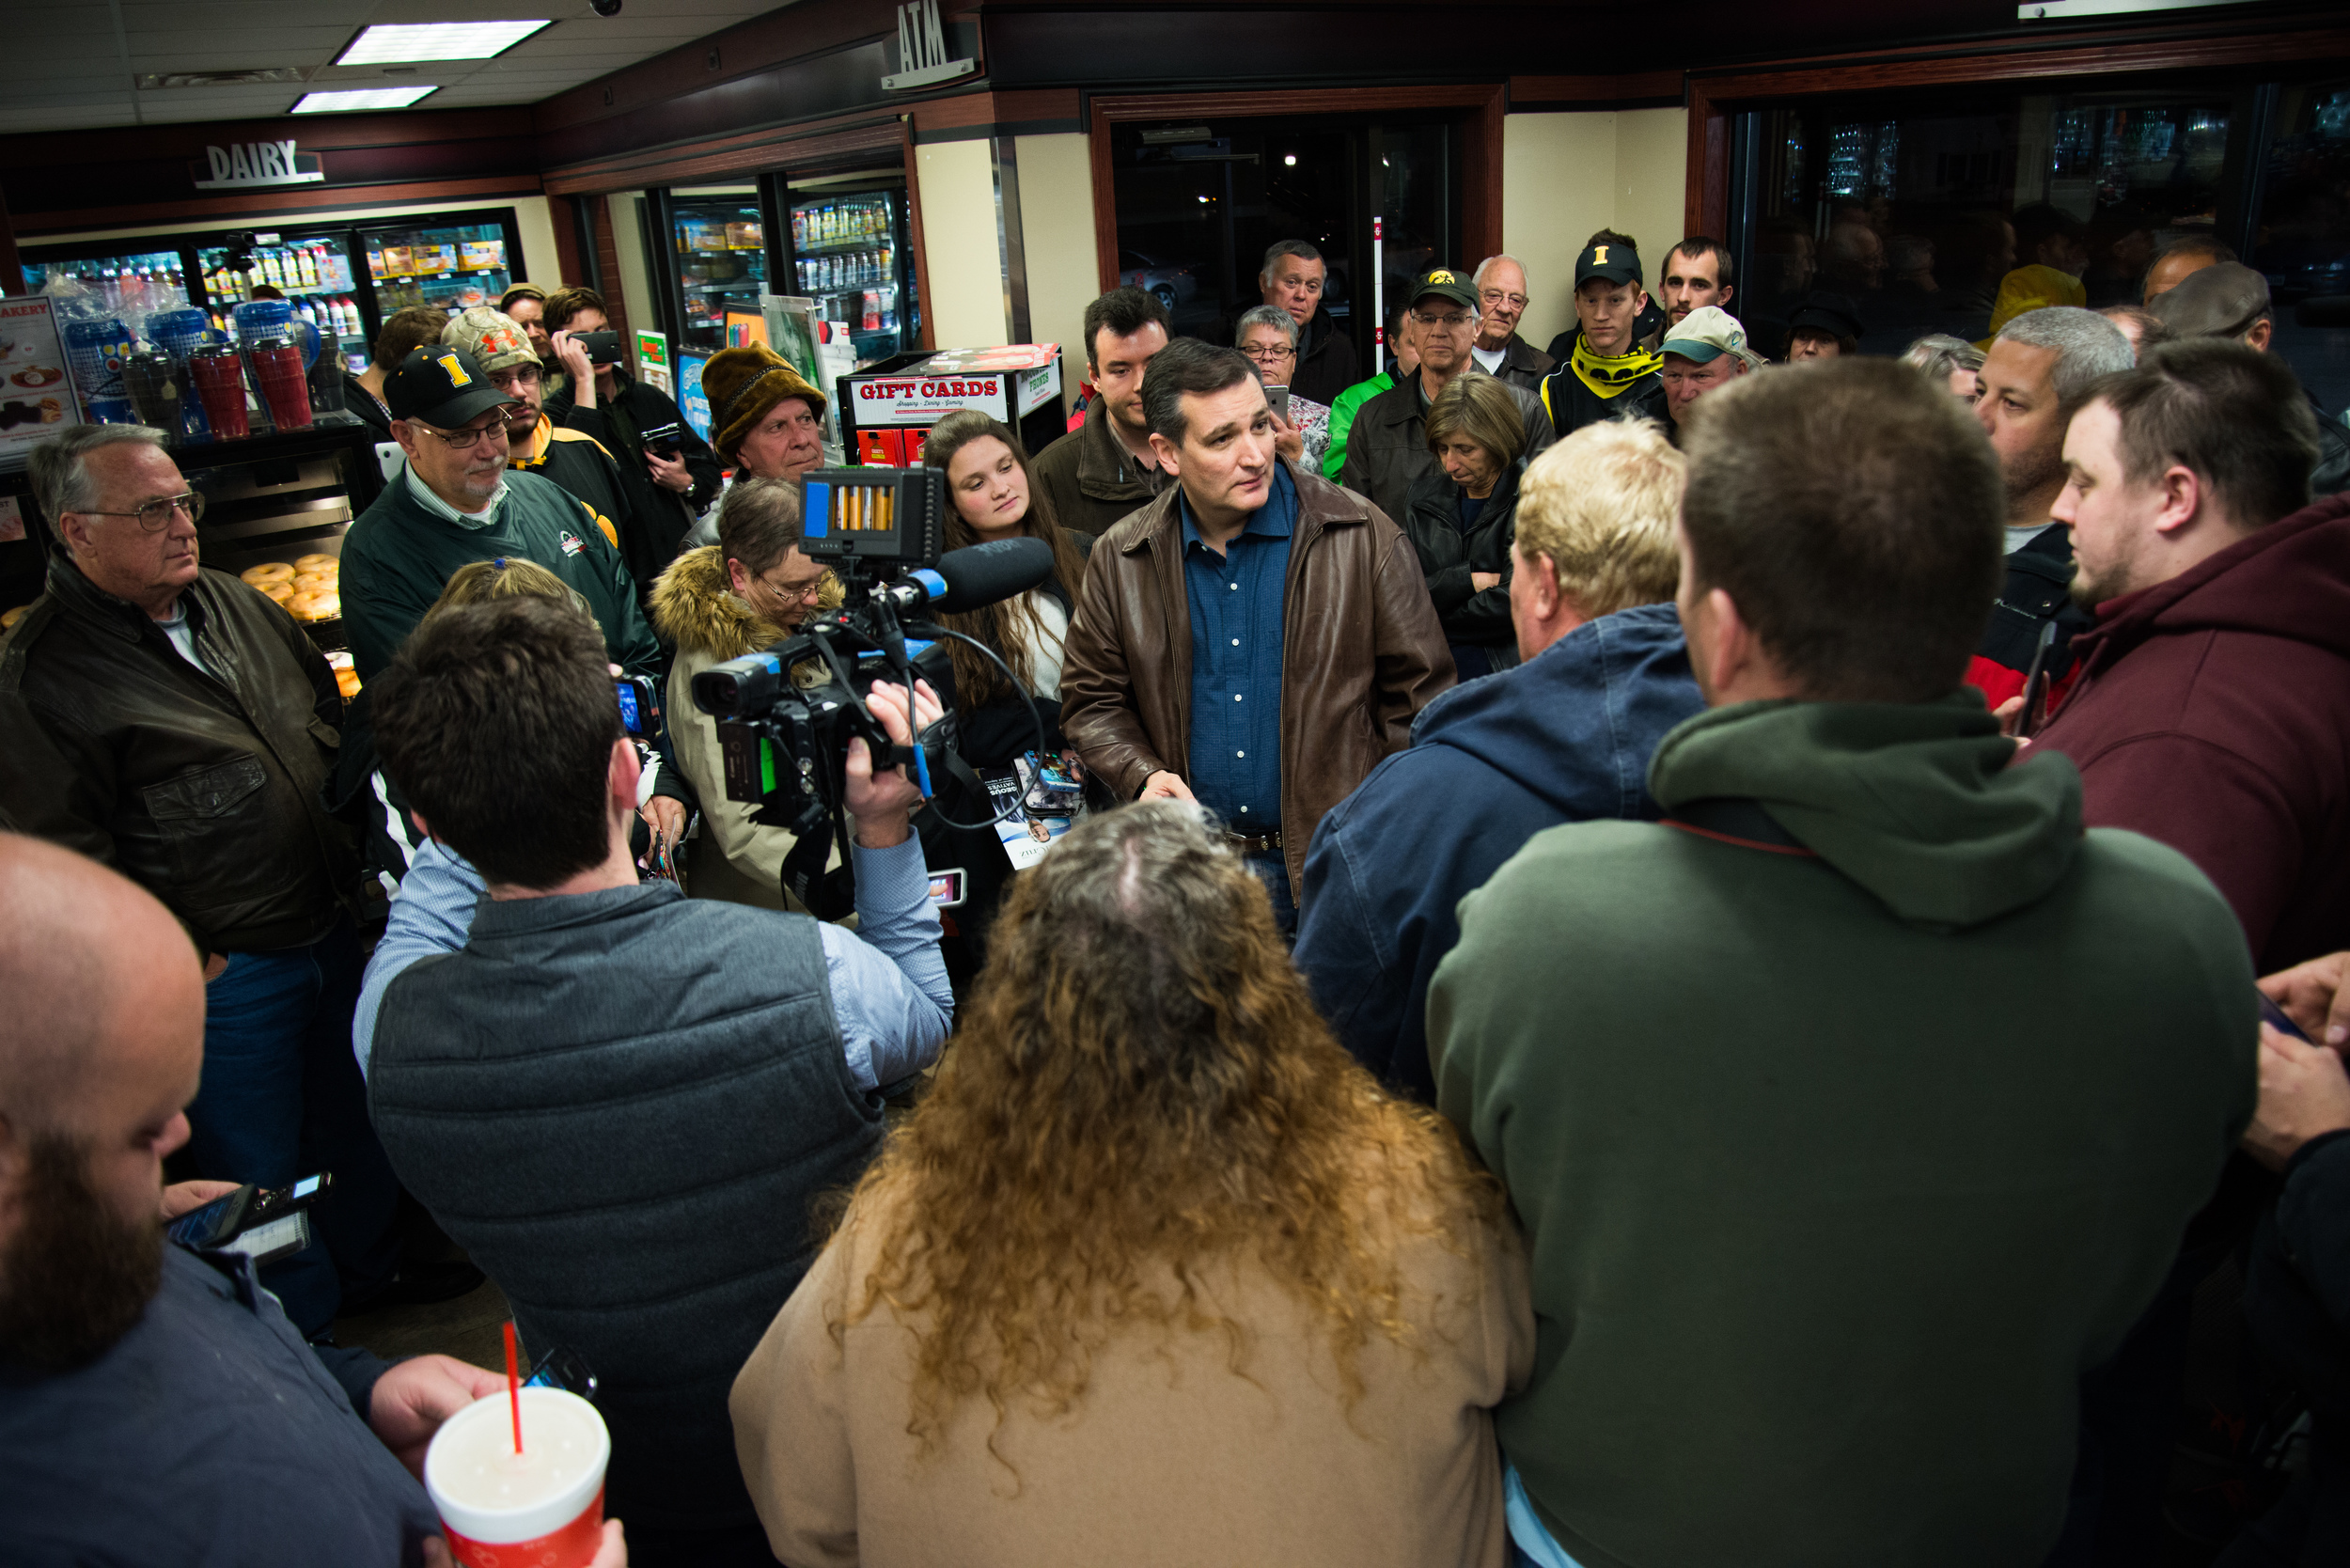 Republican presidential candidate Ted Cruz addresses voters during a campaign stop at Casey's General Store in Chariton, Iowa, on Nov. 28, 2015.